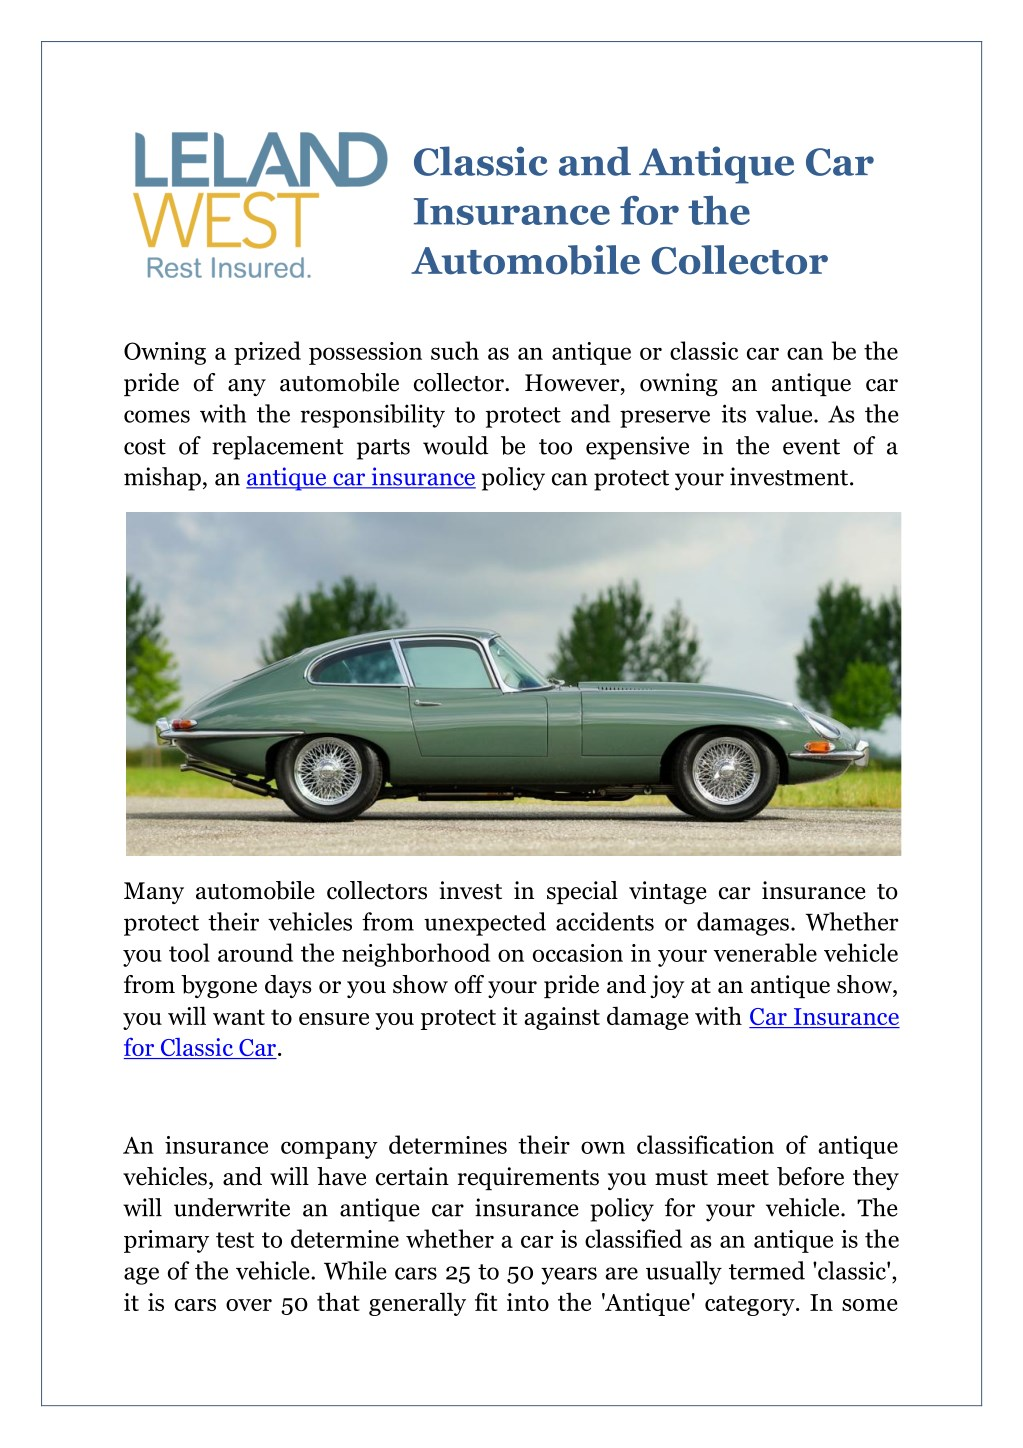 Ppt Classic And Antique Car Insurance For The Automobile Collector Powerpoint Presentation Id 7819753